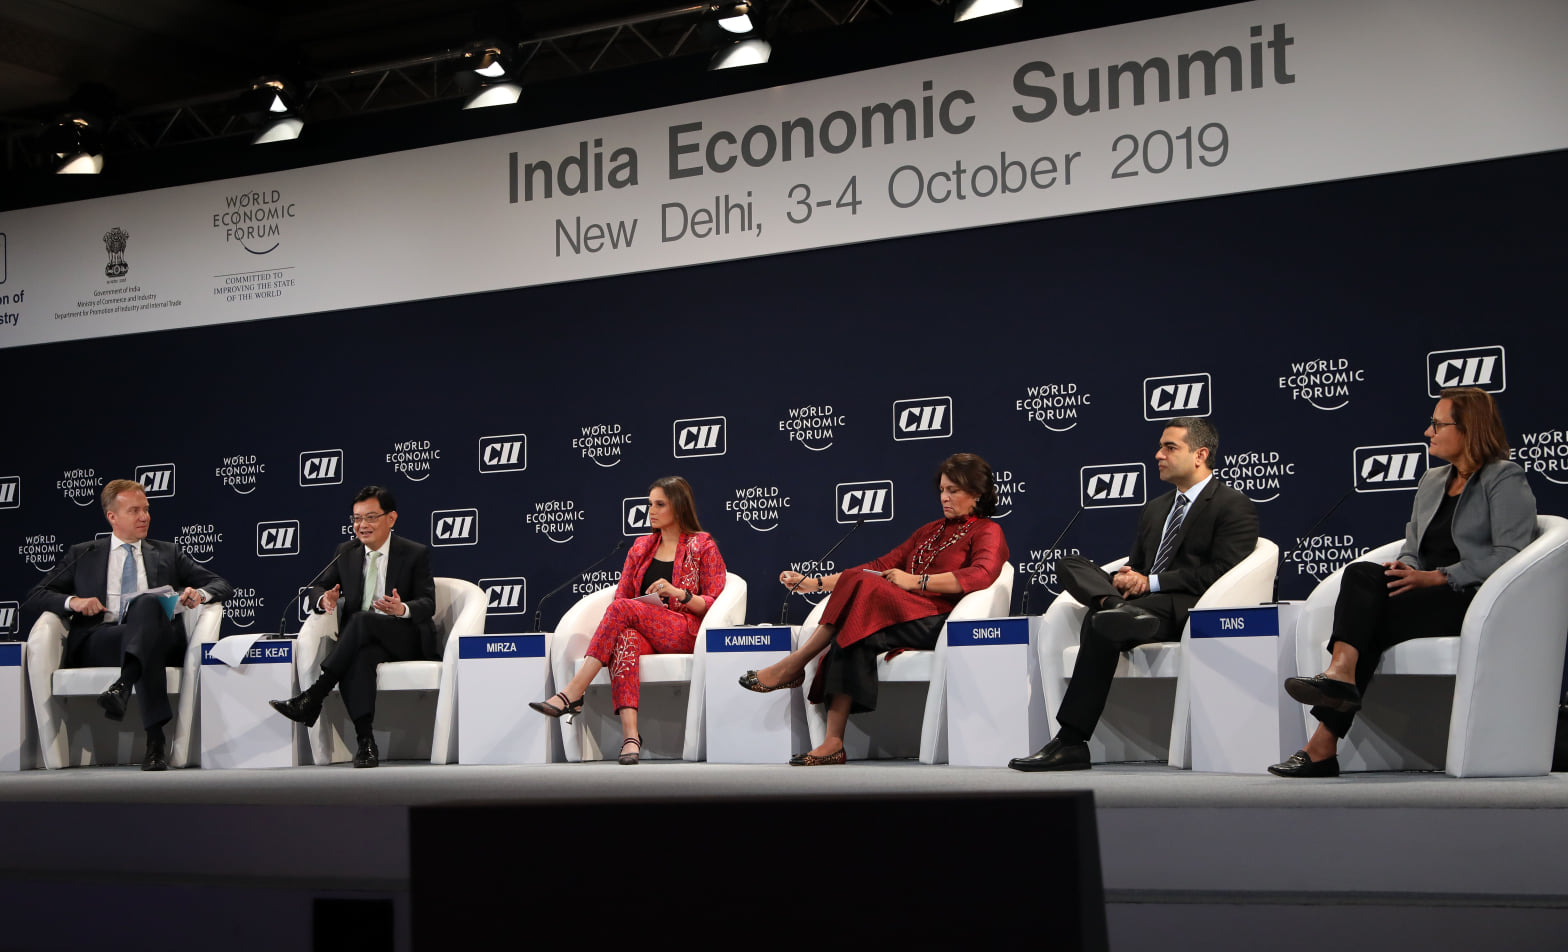 Singapore's DPM Heng Swee Keat co-chaired the India Economic Summit in New Delhi on Thursday, October 3. Photo courtesy: MCI, Fyrol